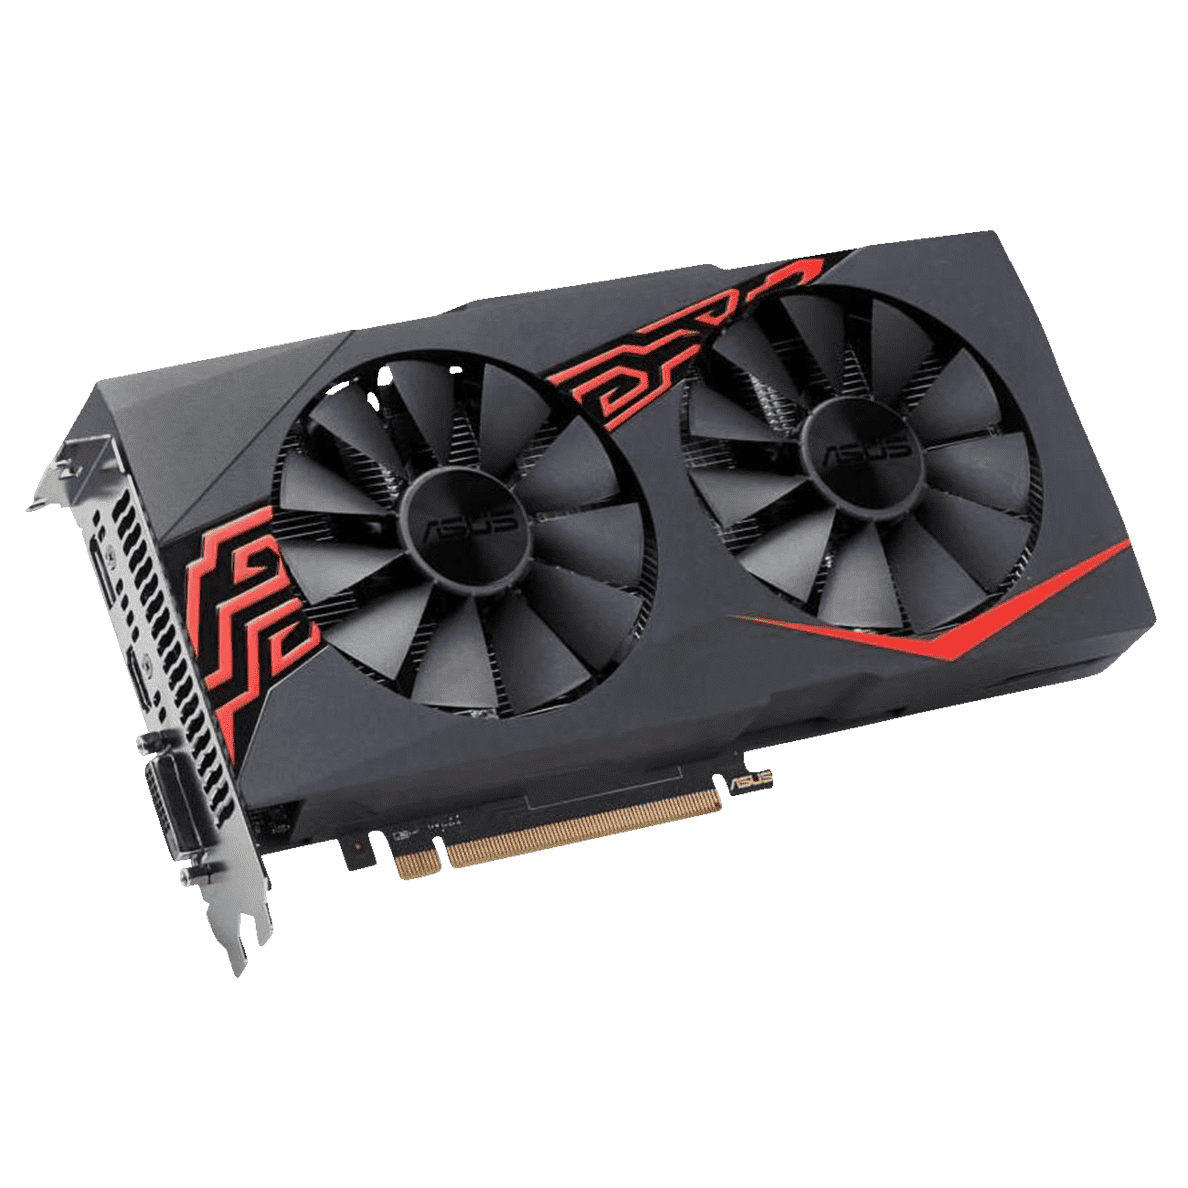 ASUS Radeon RX 570 Expedition 4GB OC (90YV0AI0-M0NA00) Grafikkarte